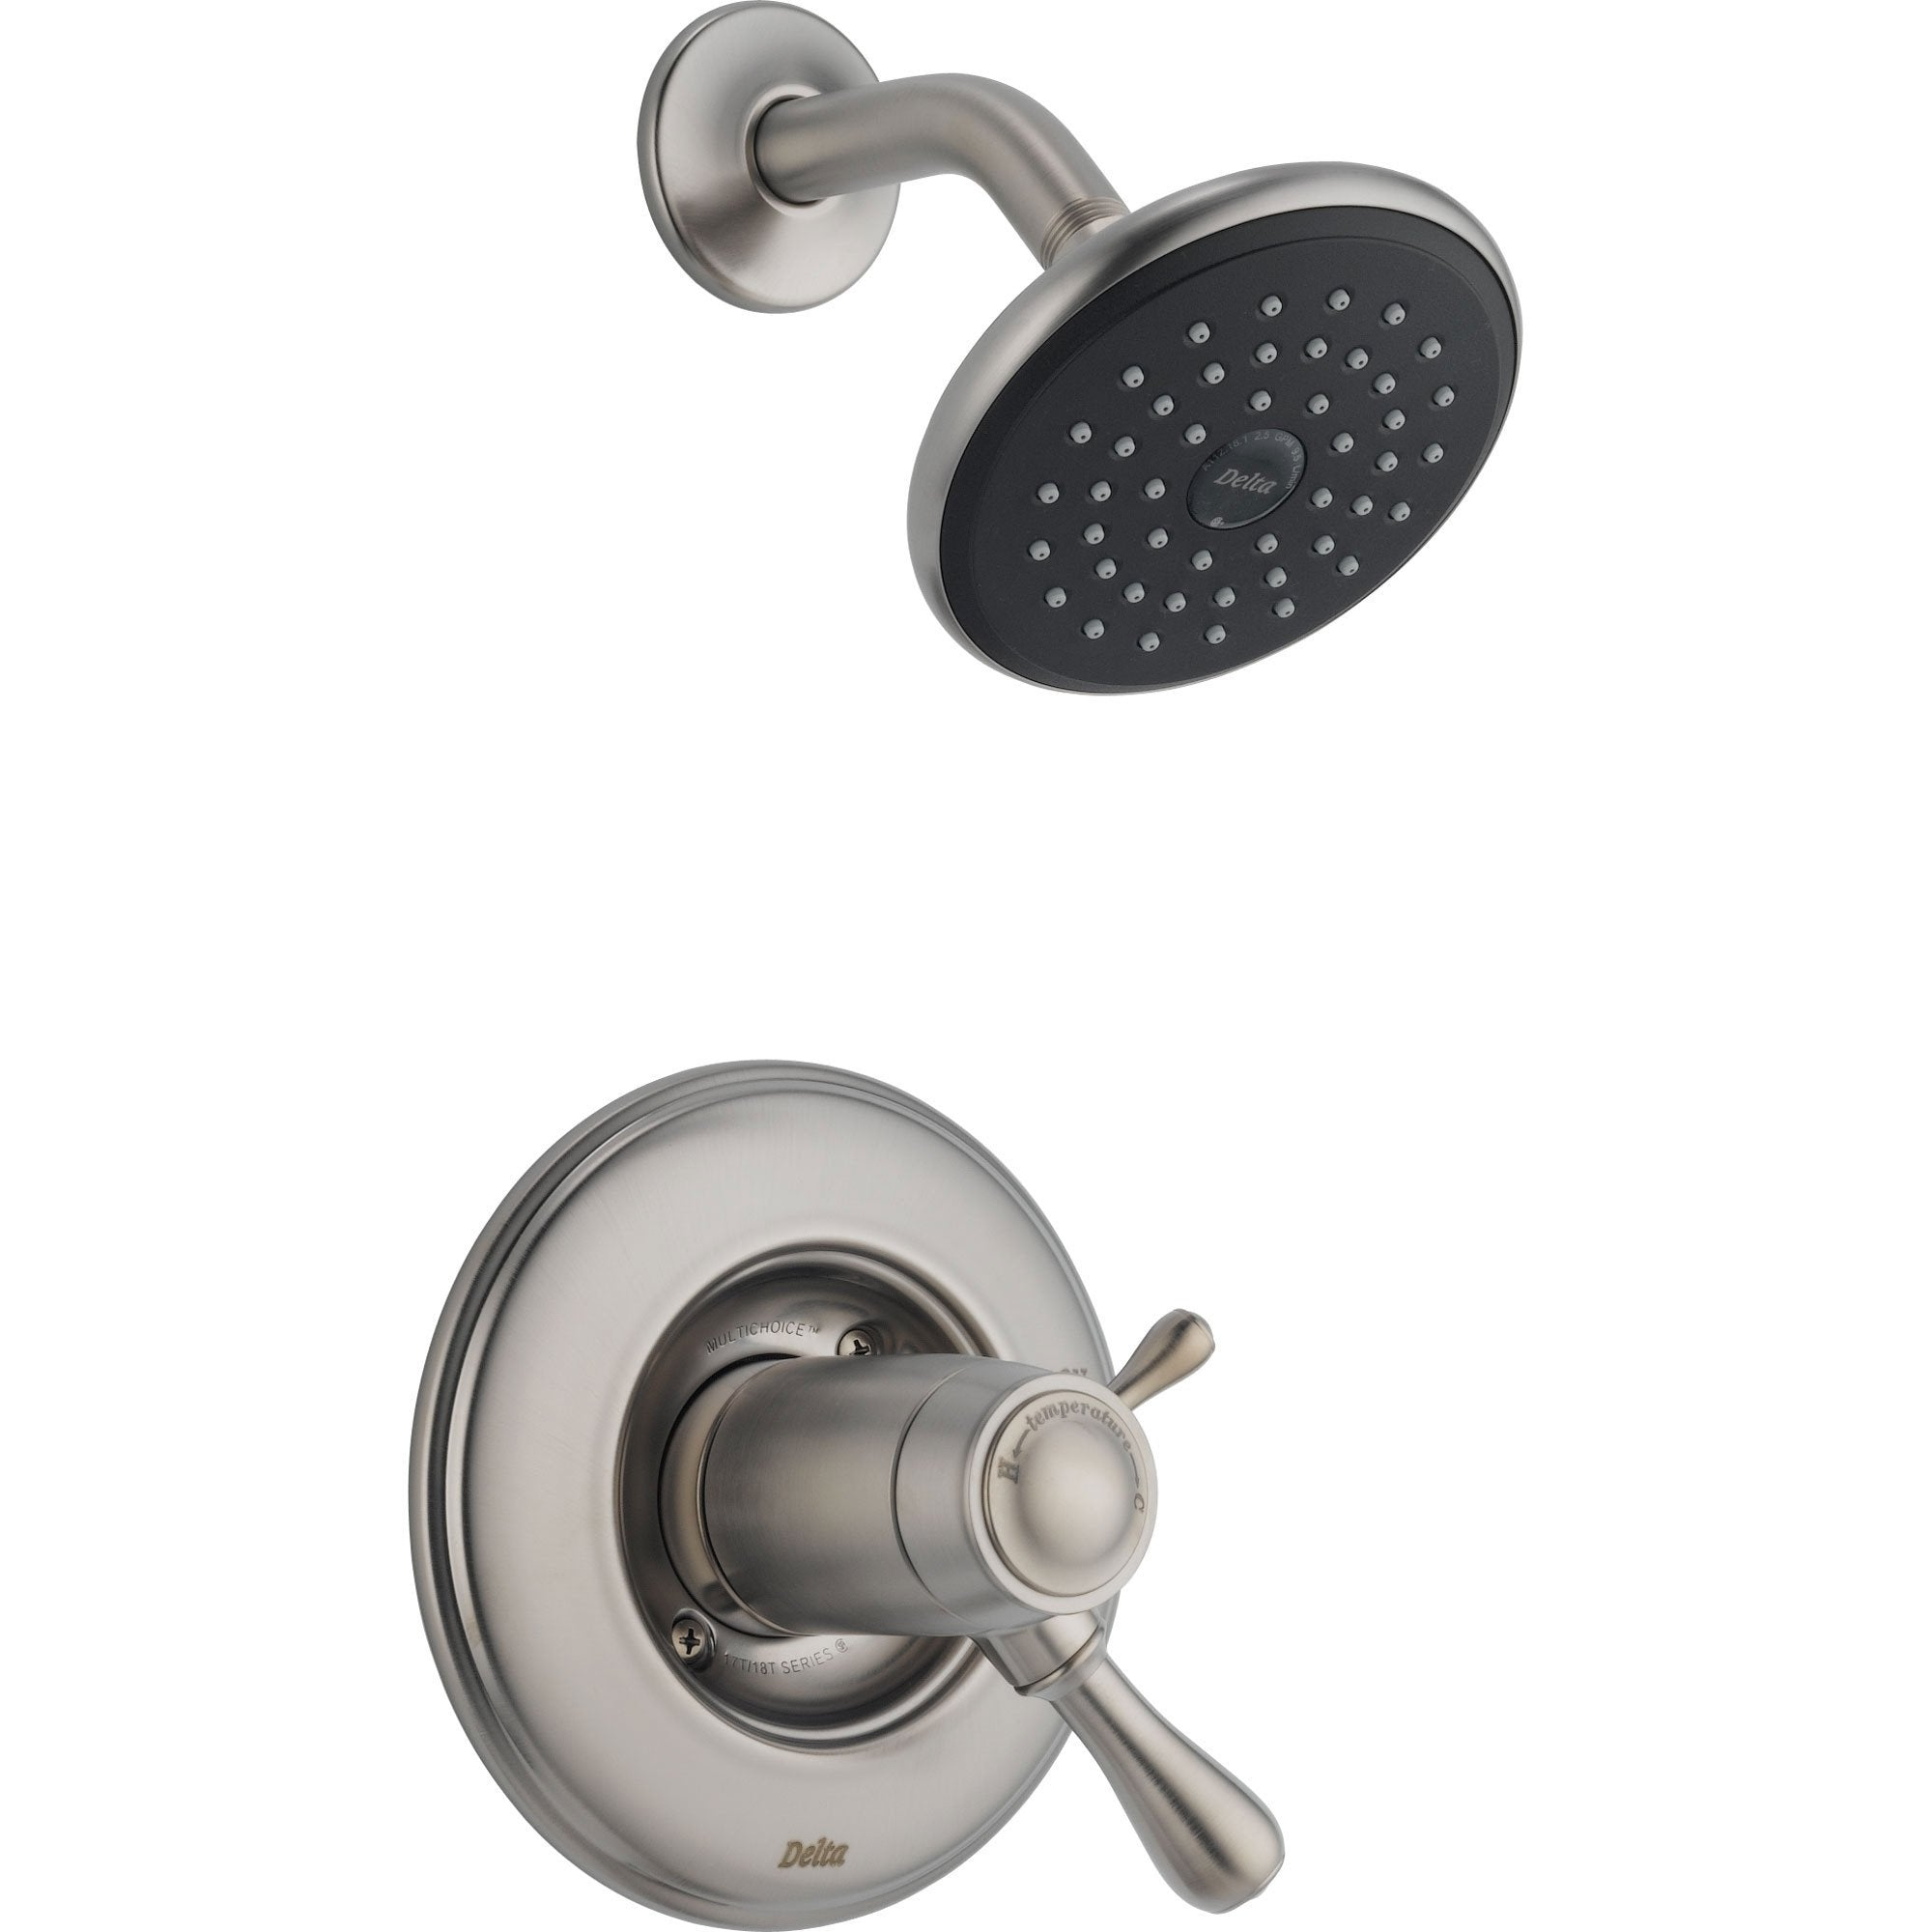 Delta Leland Stainless Steel Finish Thermostatic Shower Faucet with Valve D845V